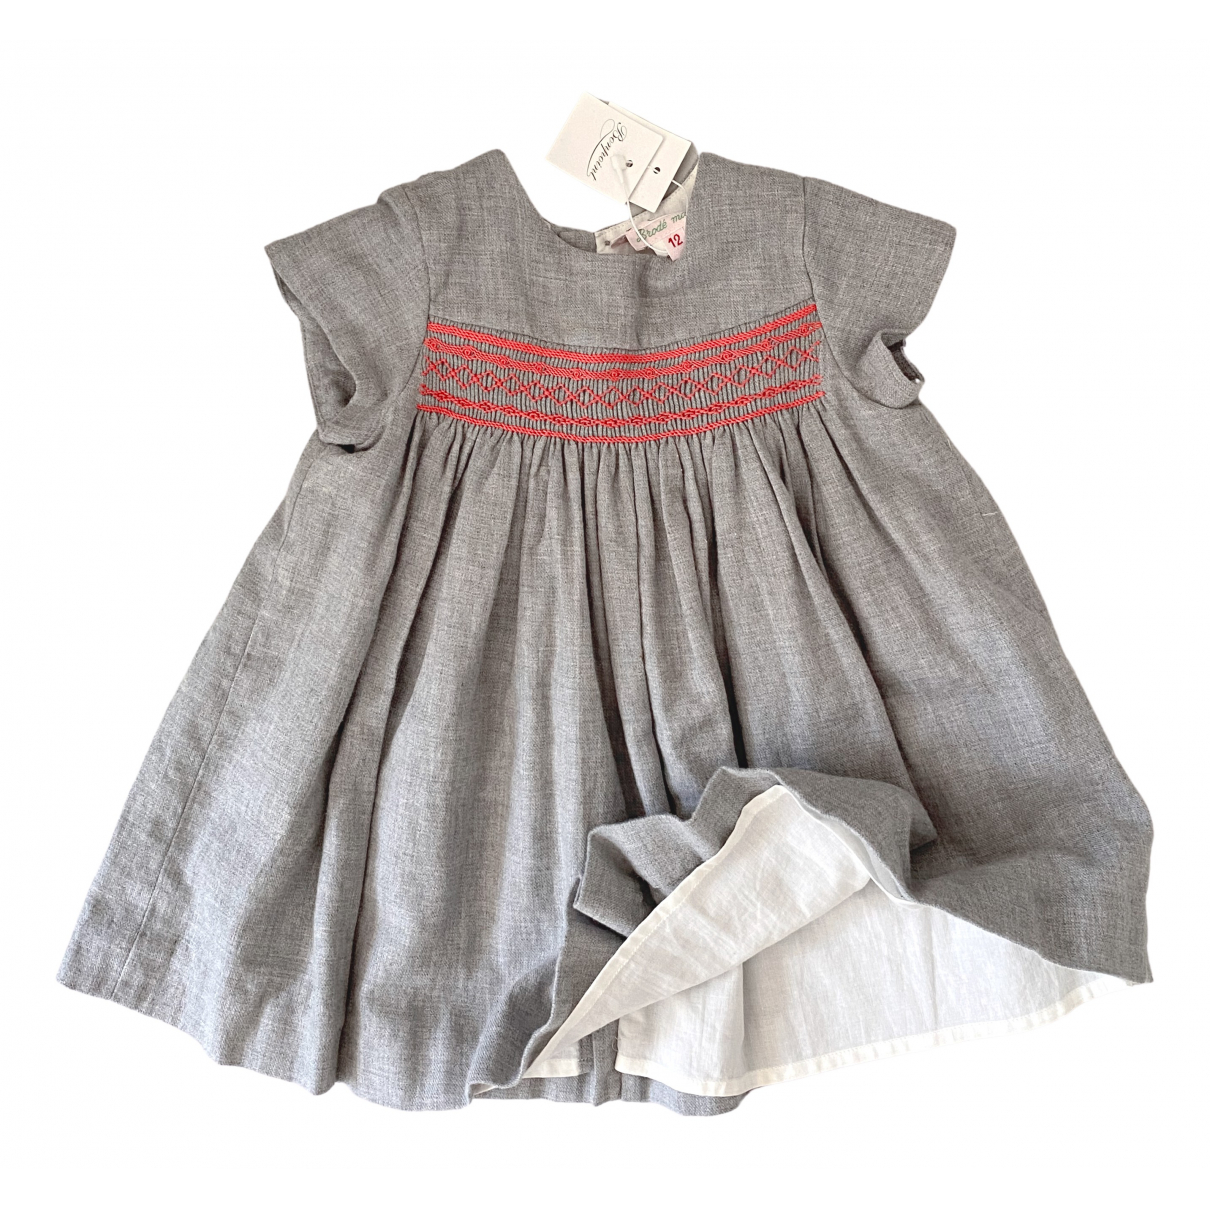 Bonpoint \N Grey Cotton dress for Kids 12 months - up to 74cm FR